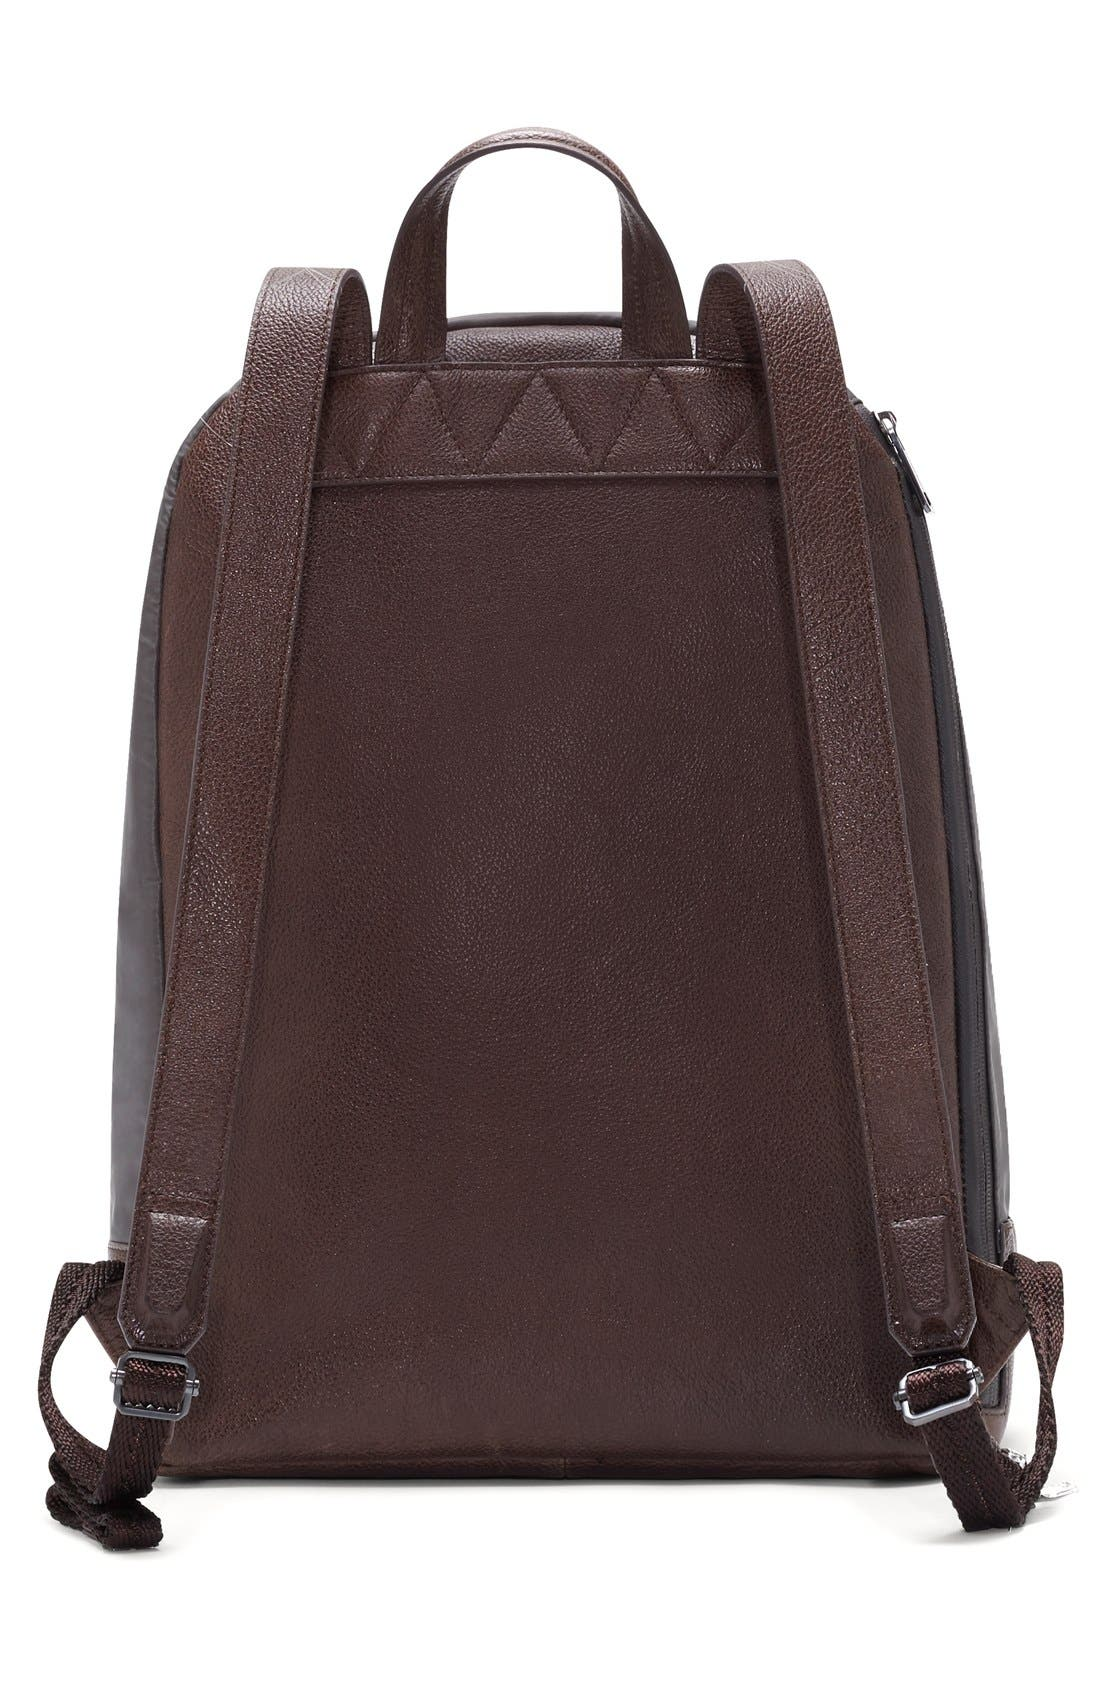 'Tolve' Nylon Backpack,                             Alternate thumbnail 2, color,                             021